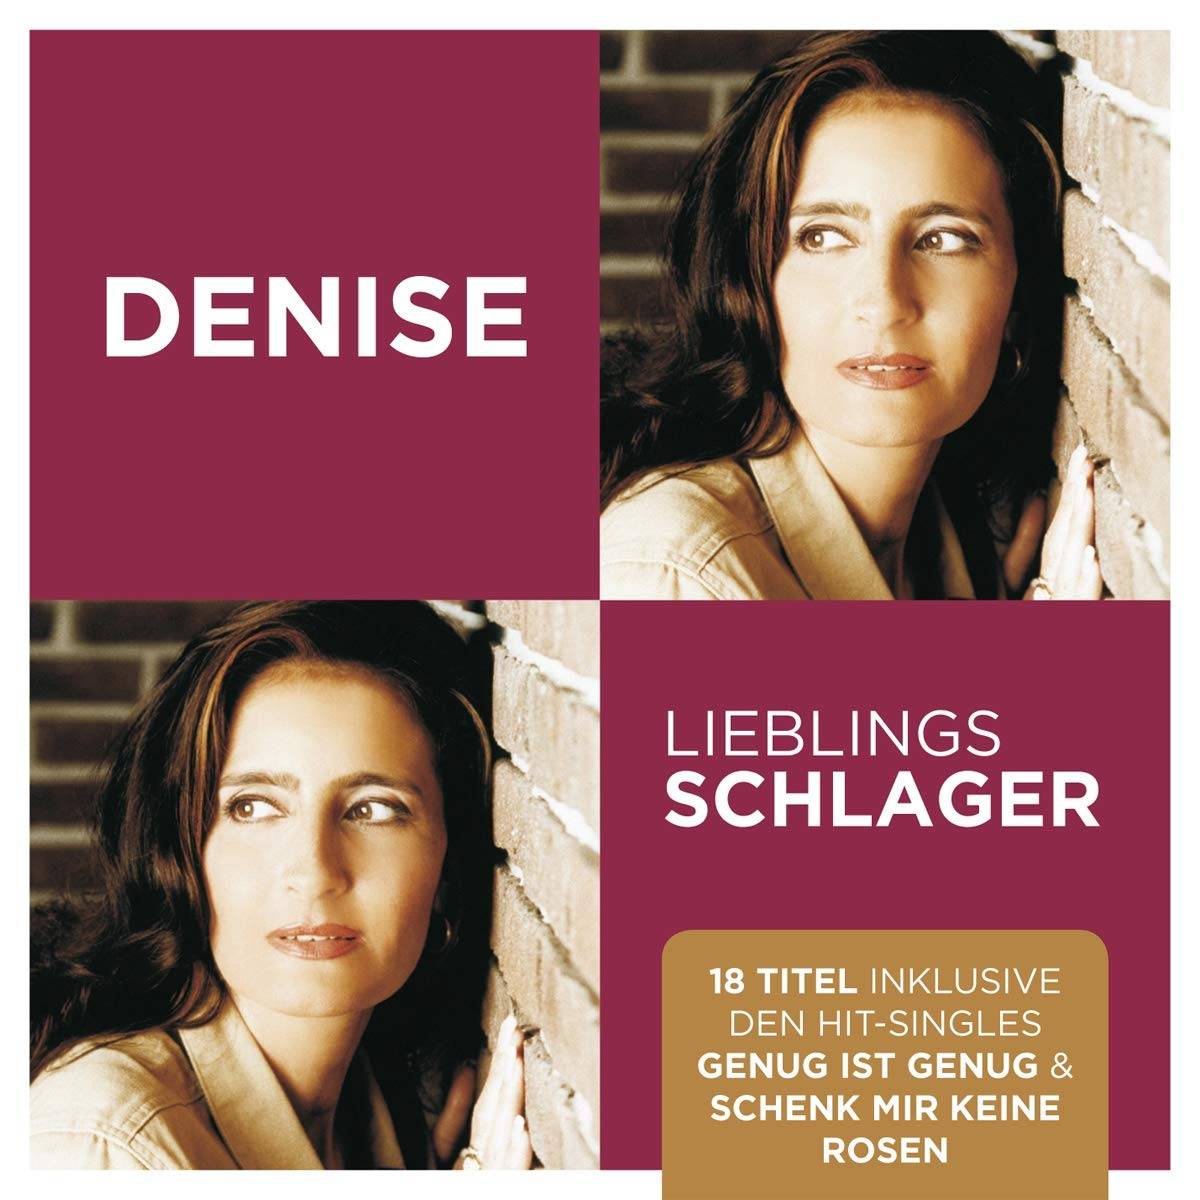 DENISE * Lieblingsschlager (DOWNLOAD-BUNDLE; CD-VÖ: 08.05.2020)